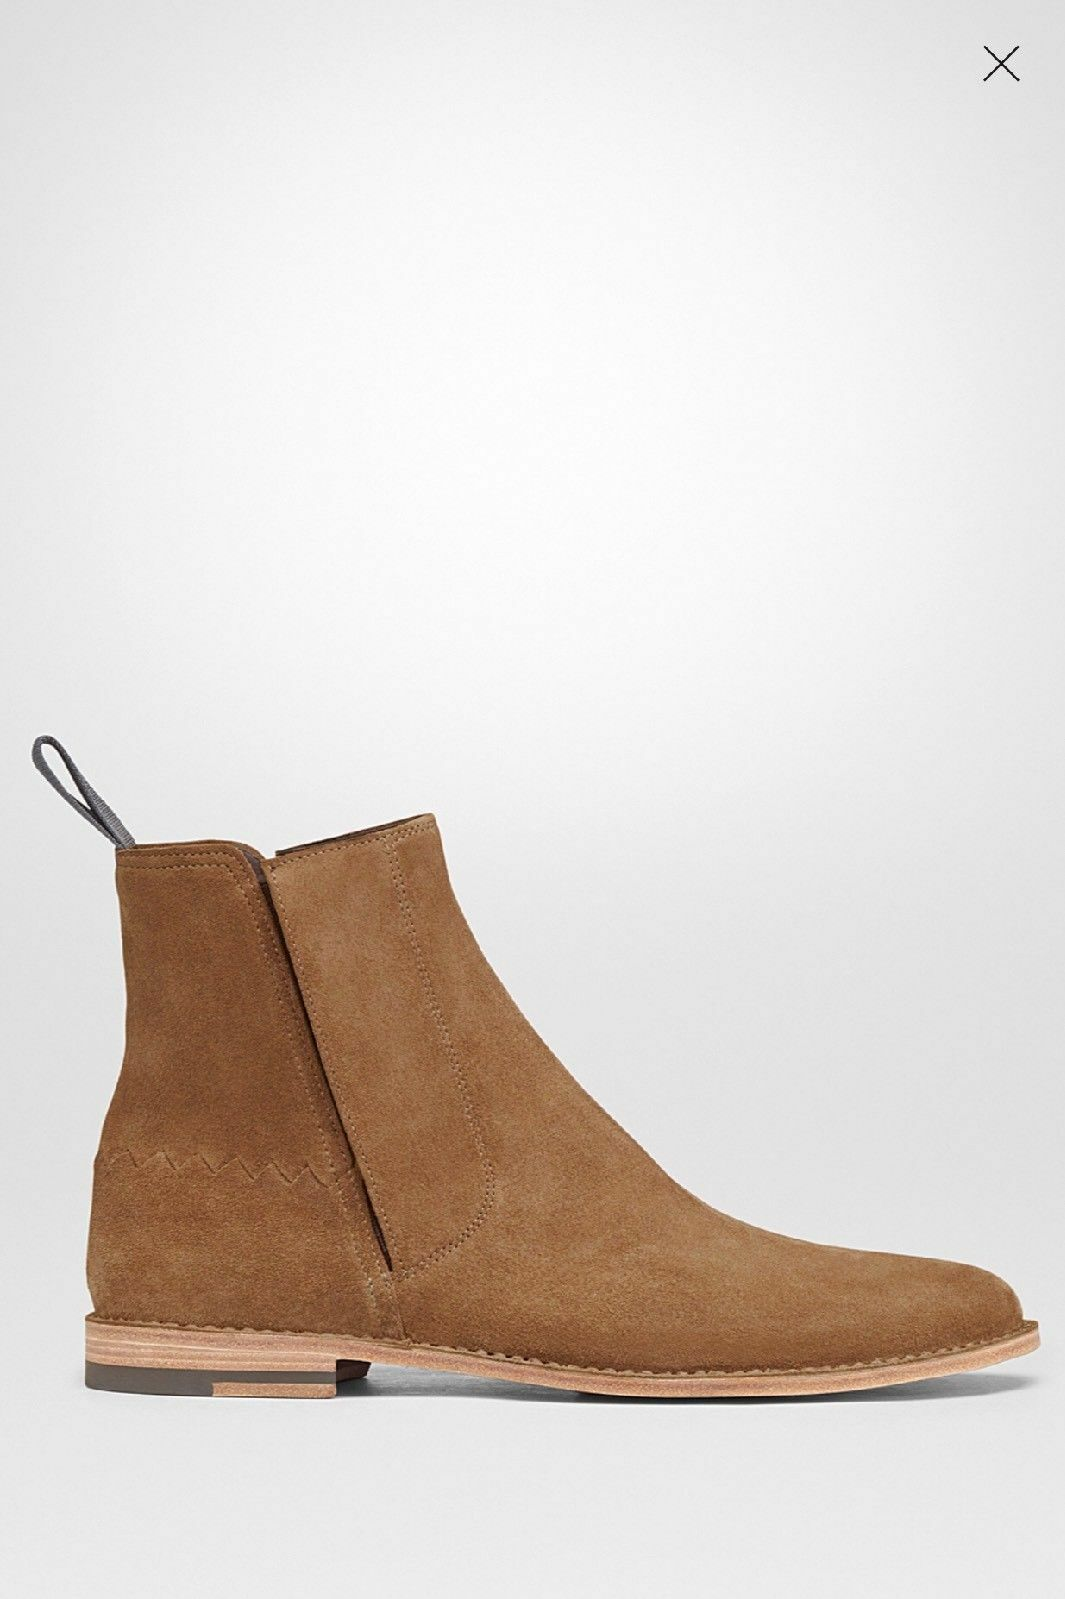 New Handmade Men's Zipper Suede Leather Boots in Camel Shade, luxury boots